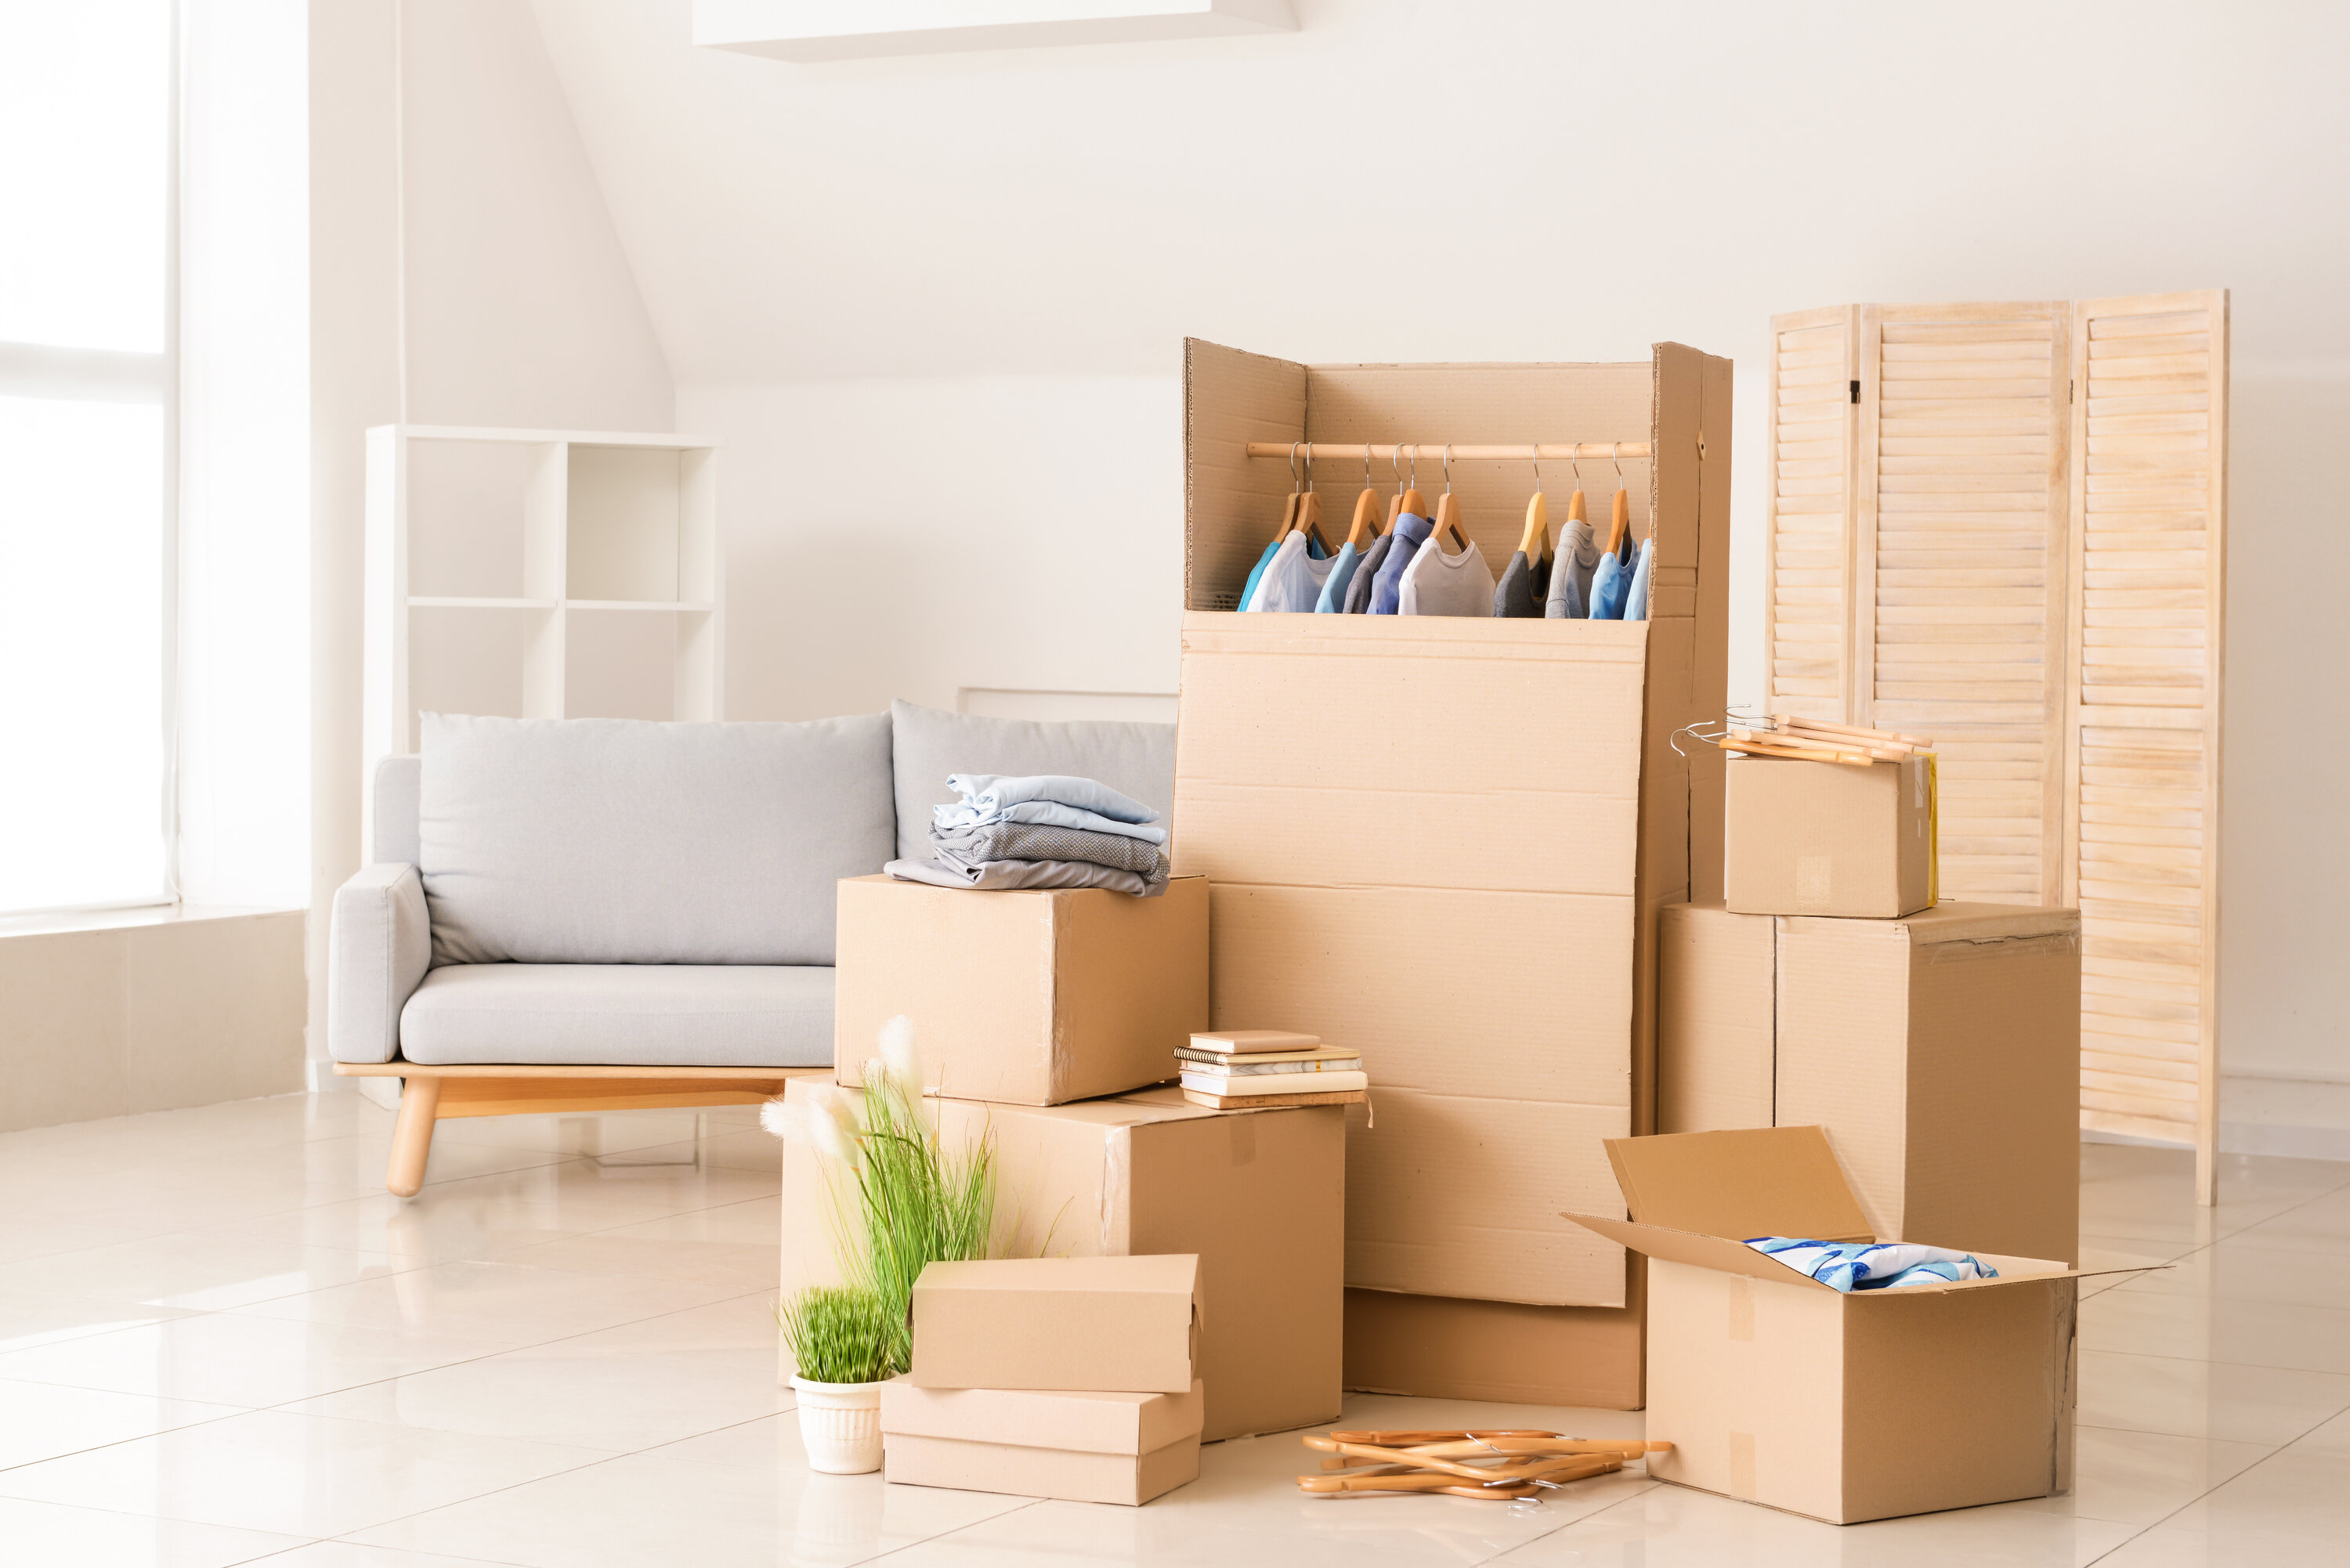 Multiple cardboard boxes stacked in multiple stacks filled with items to move, they are in a white bed room with window lighting with a small couch and wardrobe in the back